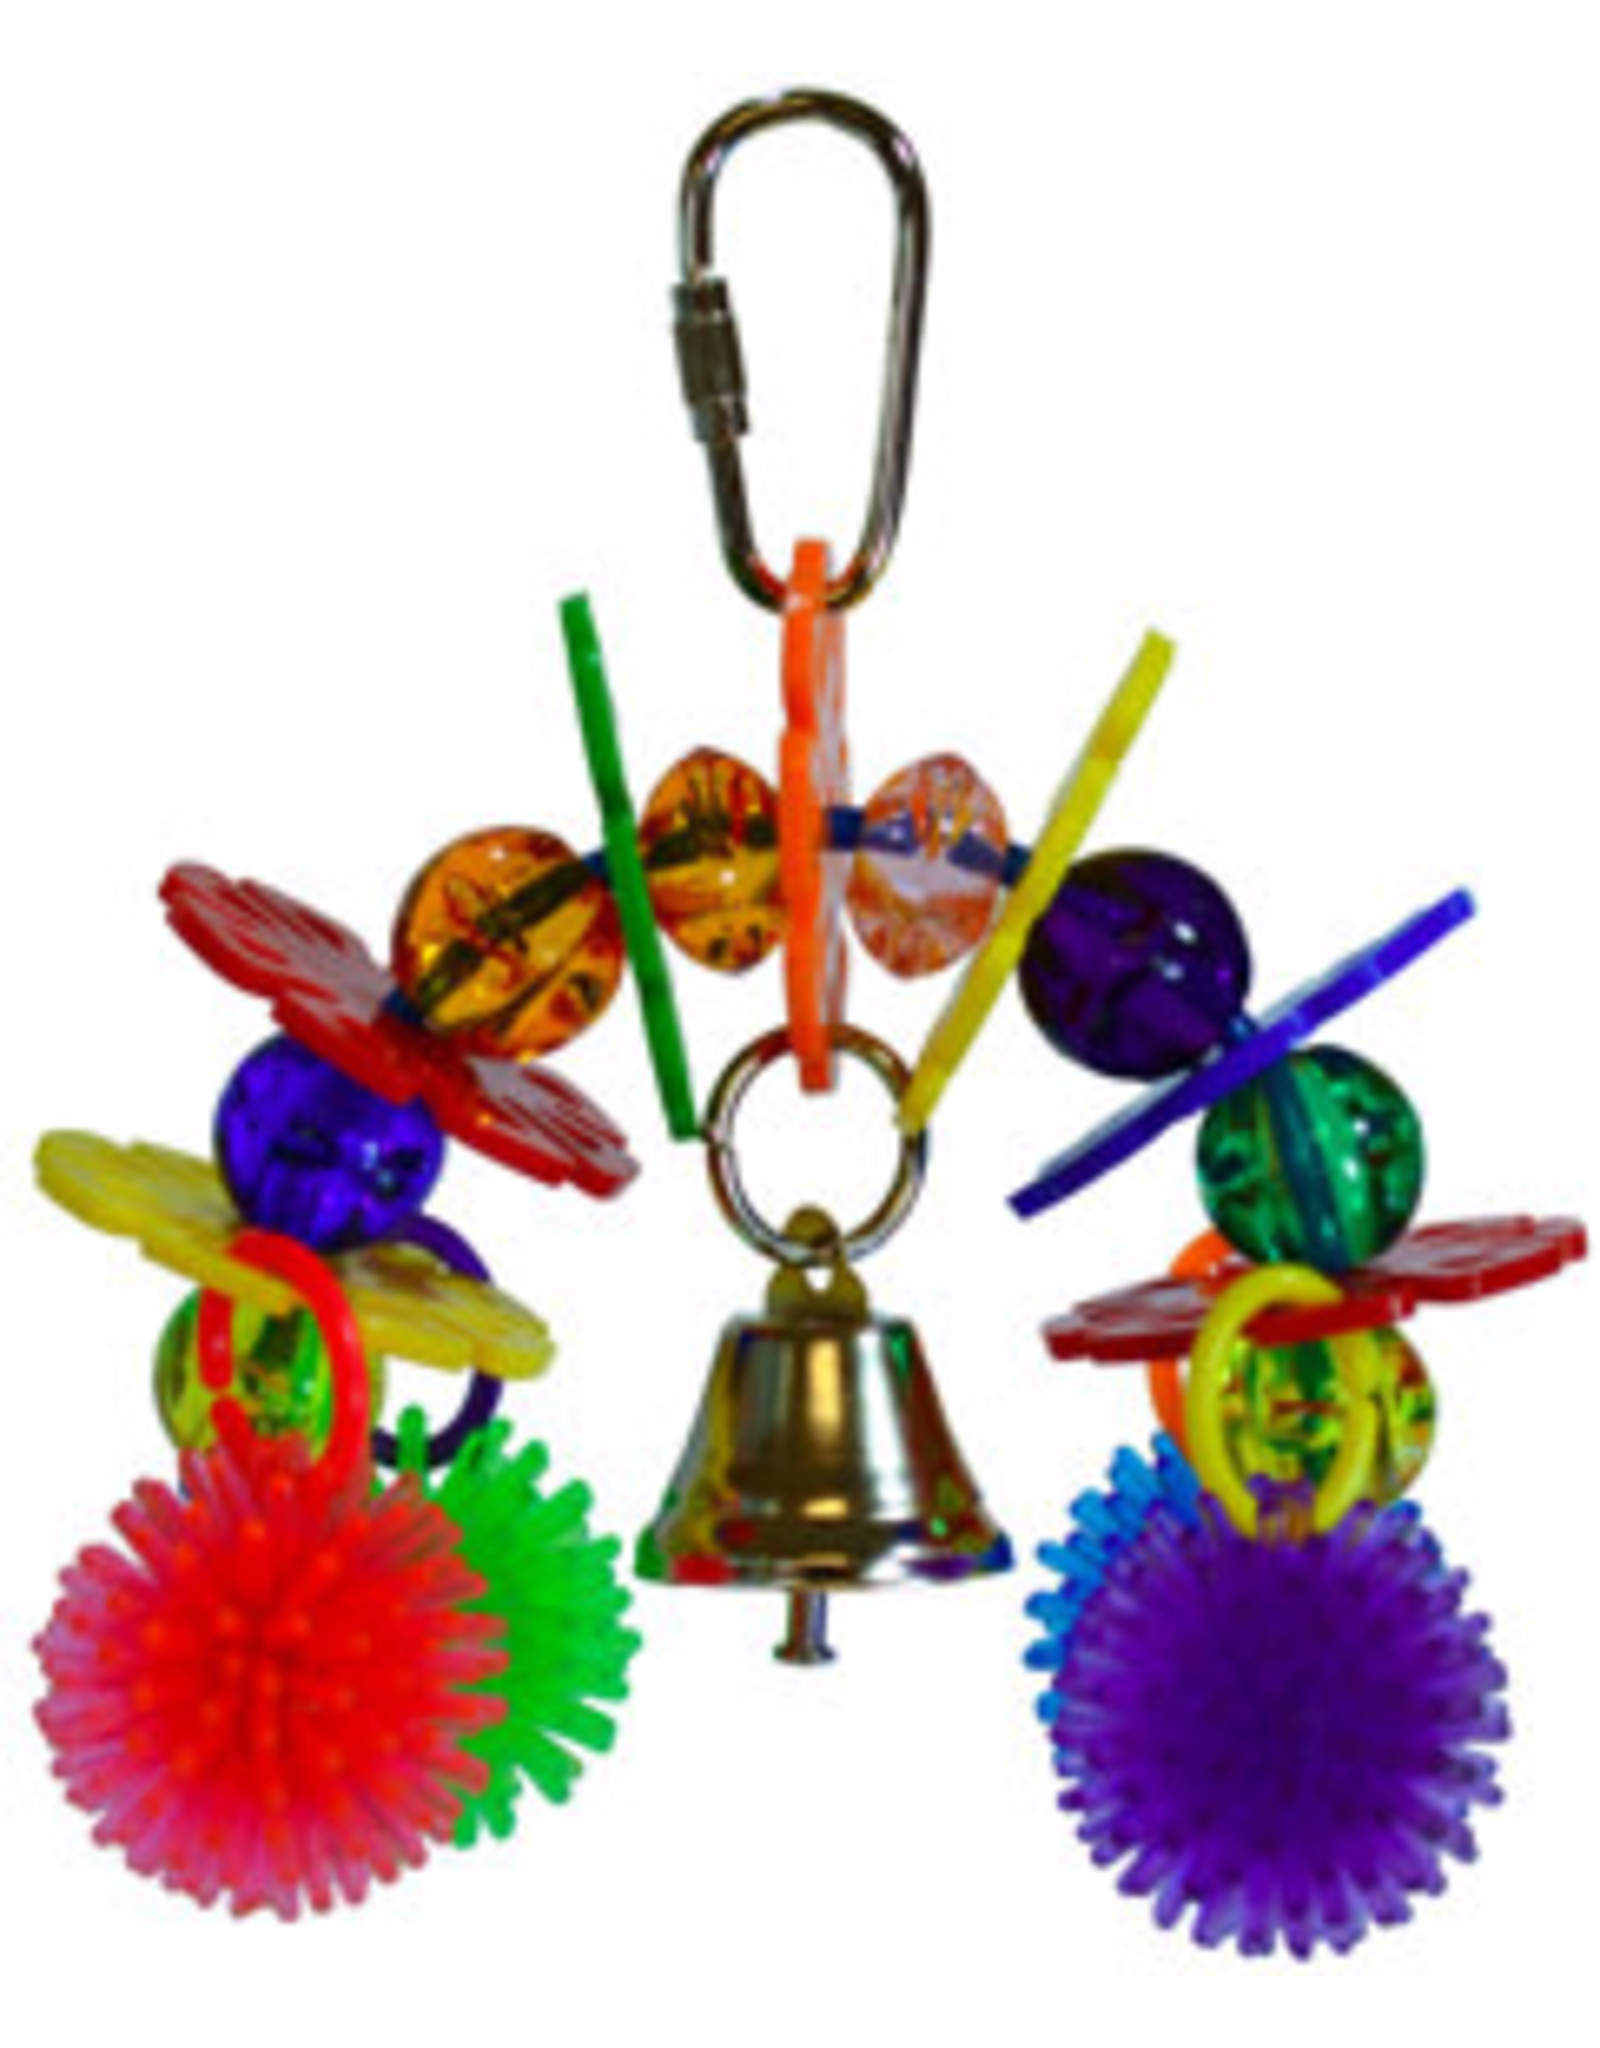 A&E CAGE CO Rainbow Bridge Bird Toy